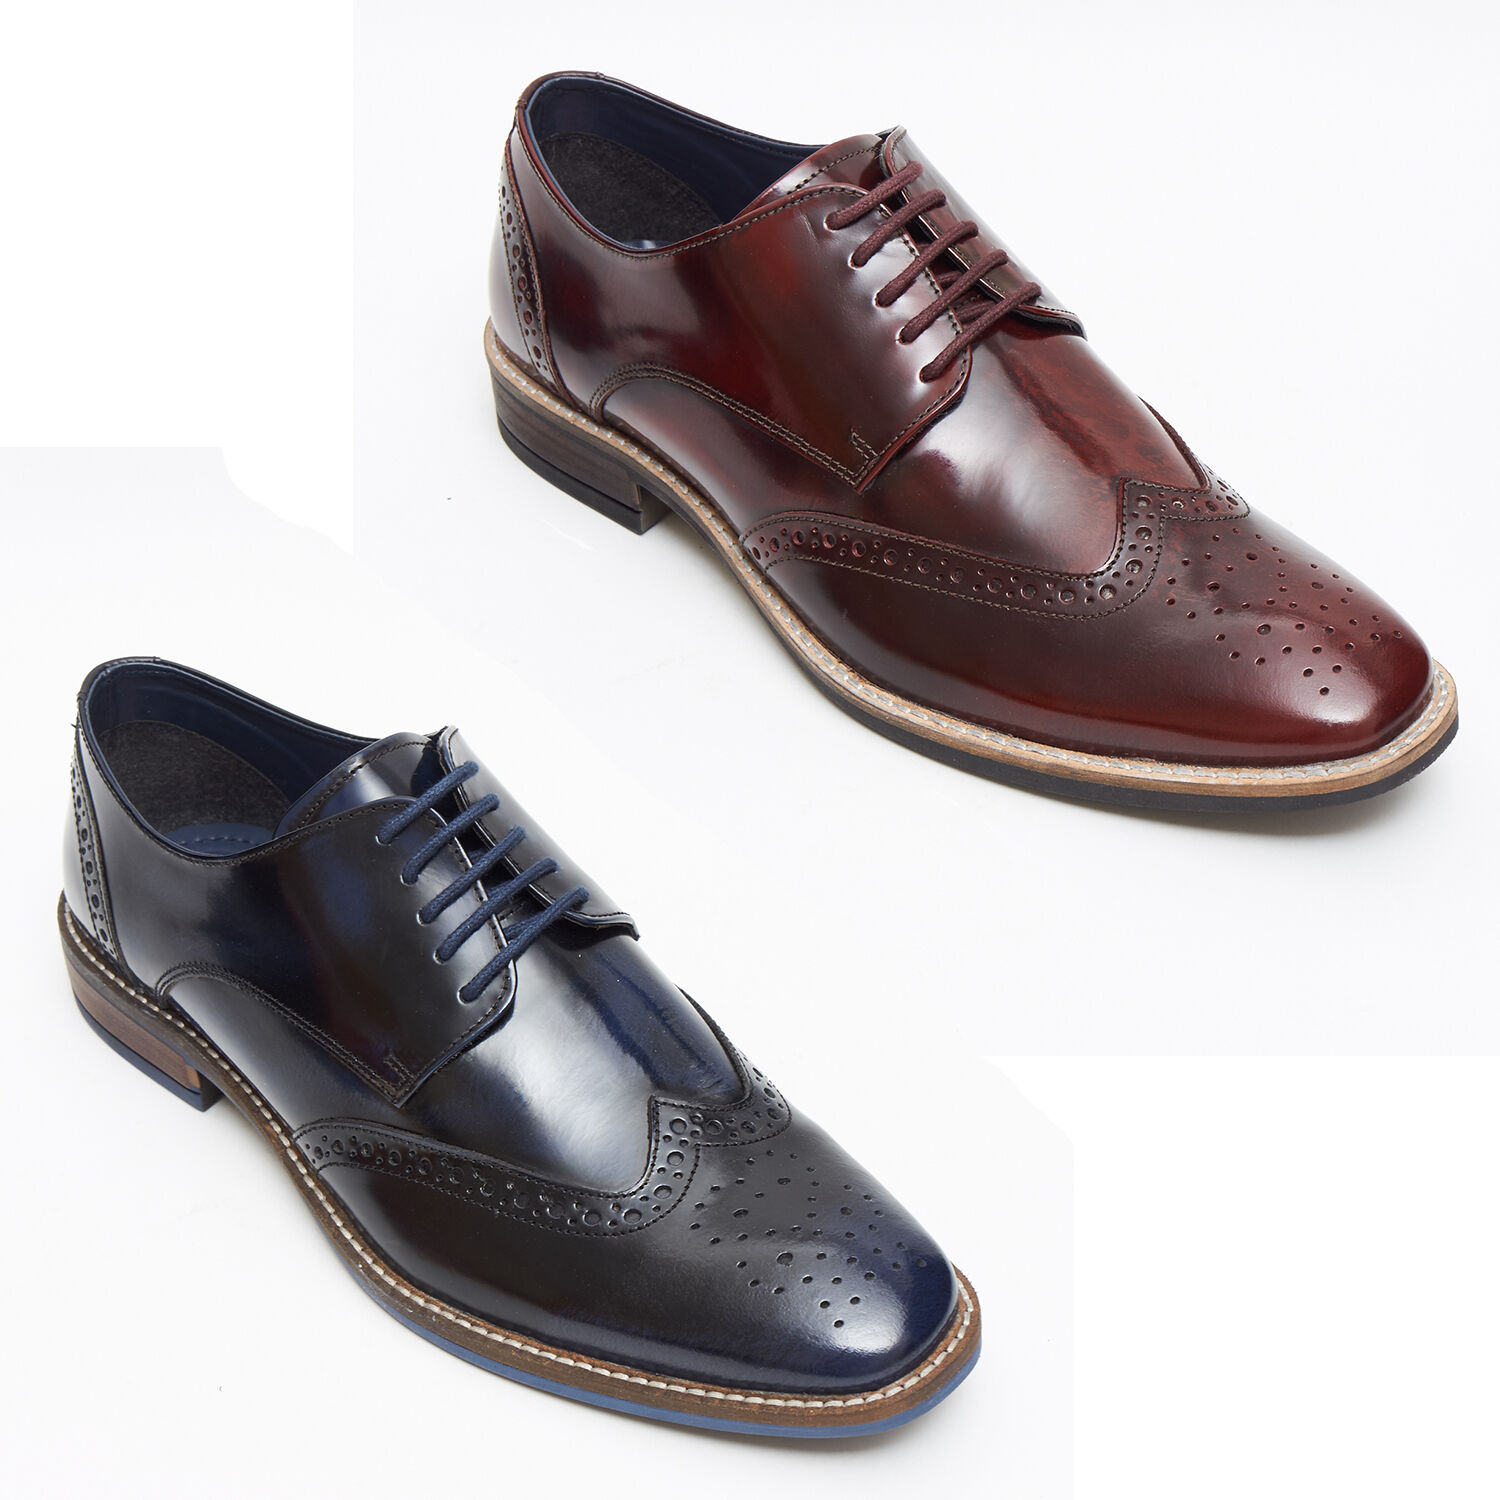 Mens New Leather Smart Black Formal Brogue Shoes-Bordo and Black Smart with Navy Blue Shade a7fd0d